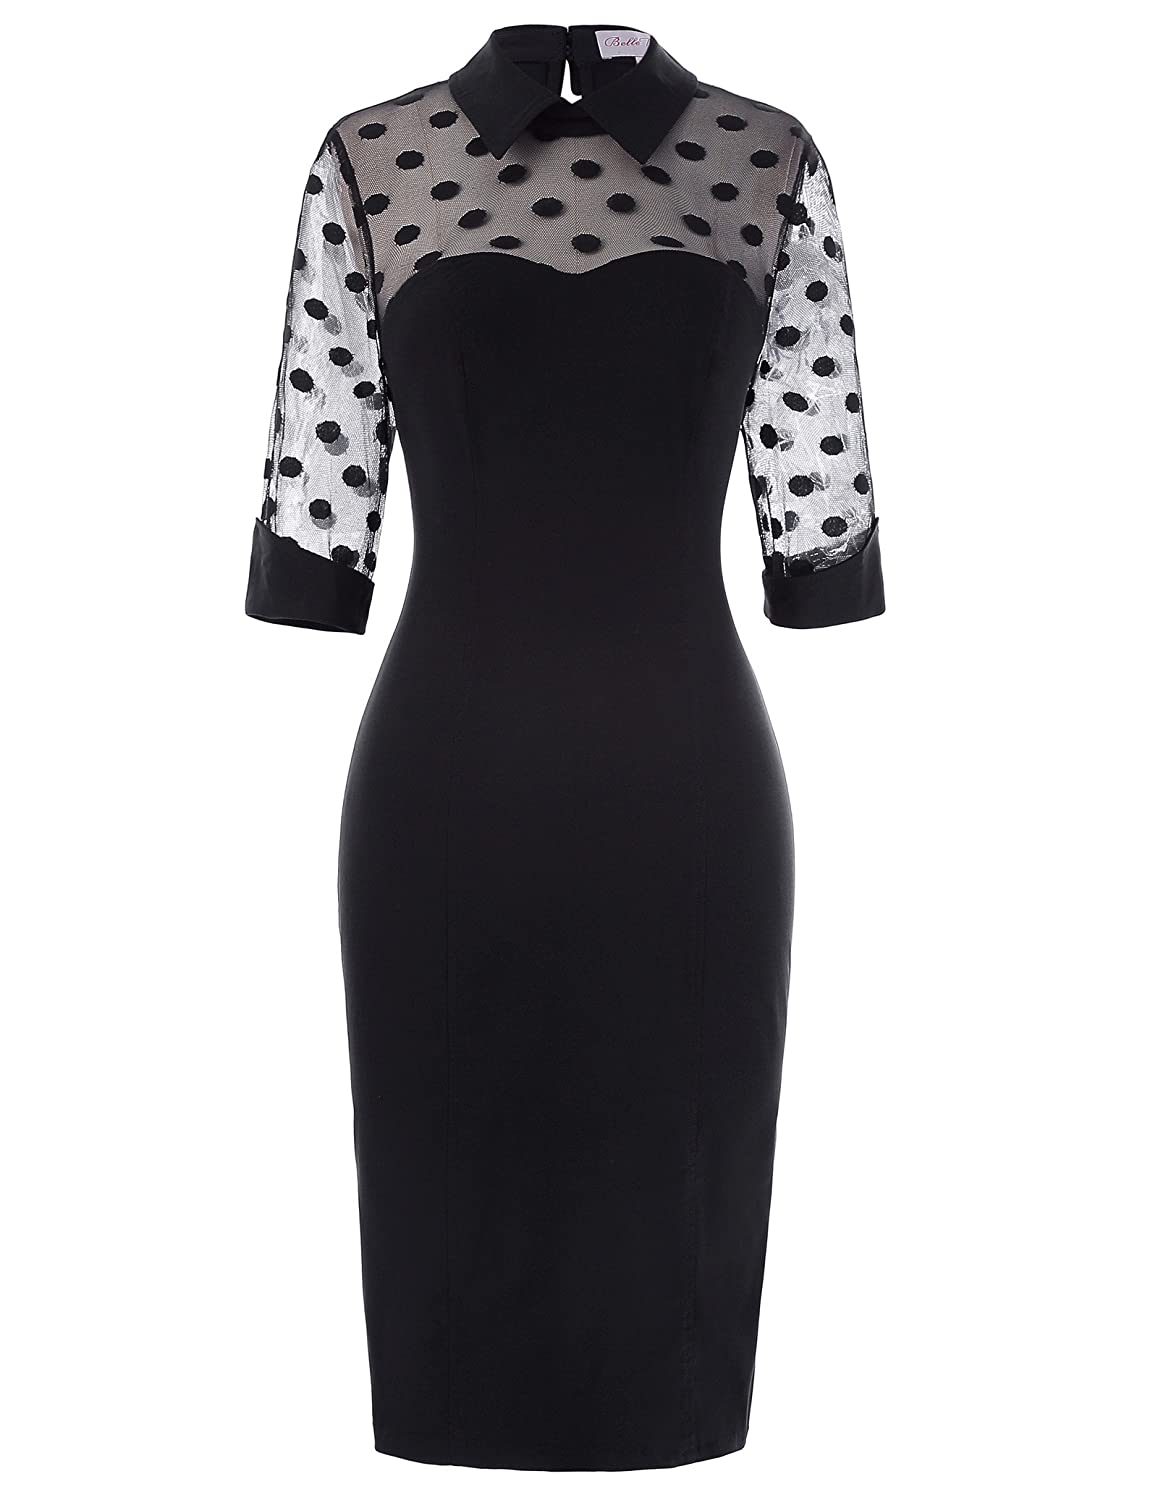 500 Vintage Style Dresses for Sale | Vintage Inspired Dresses Womens Summer 1950s Retro Polka Dots Lapel Collar Pencil Dress Cocktail Dresses $24.99 AT vintagedancer.com